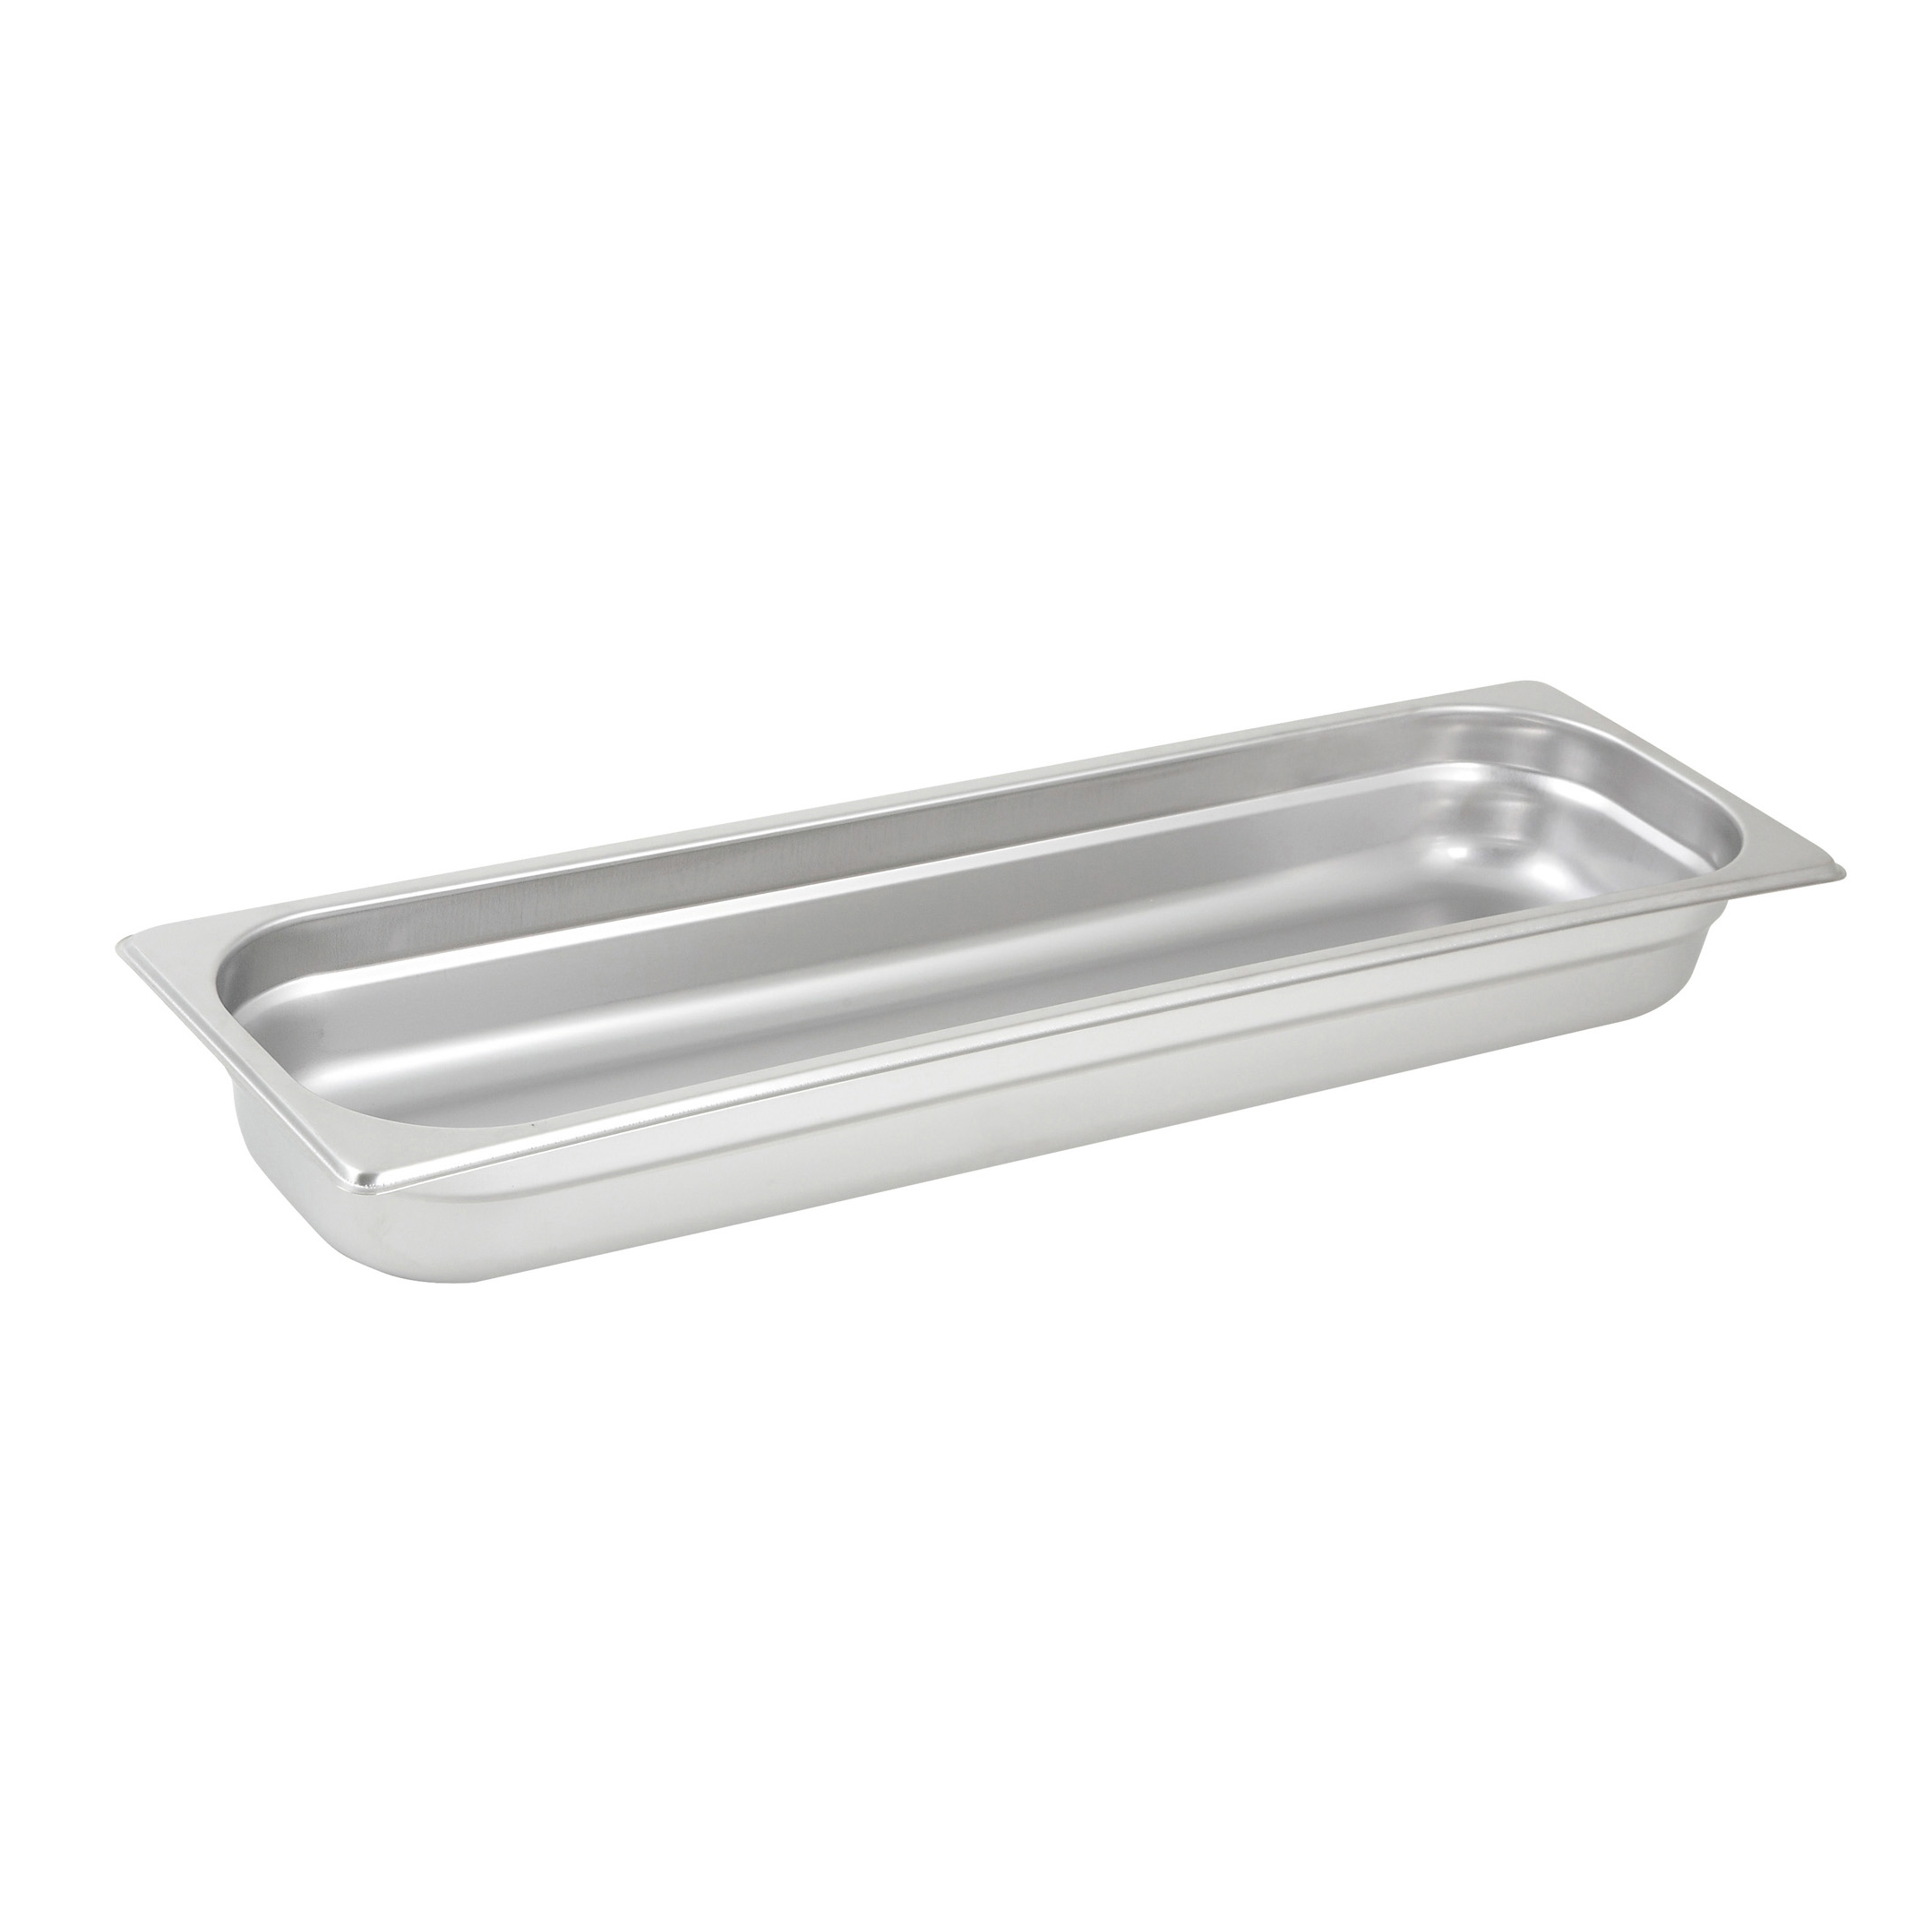 Winco SPJH-2HL steam table pan, stainless steel